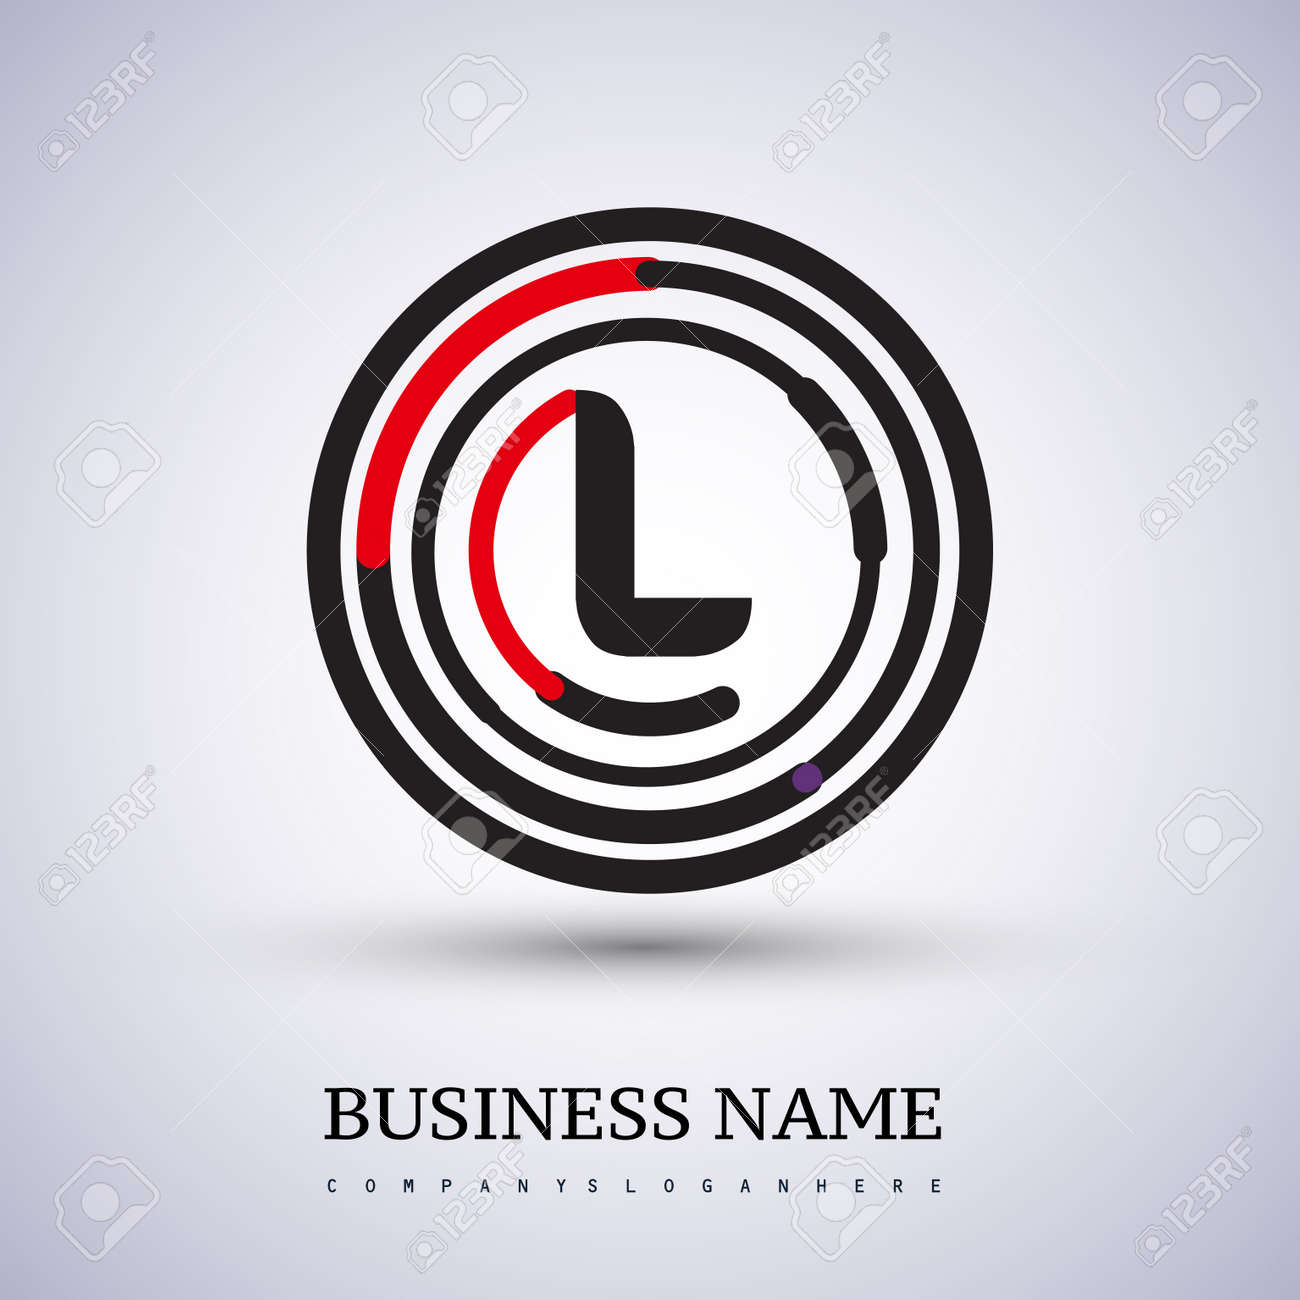 Letter L vector logo symbol in the circle thin line colored black and red. Design for your business or company identity. - 159345335